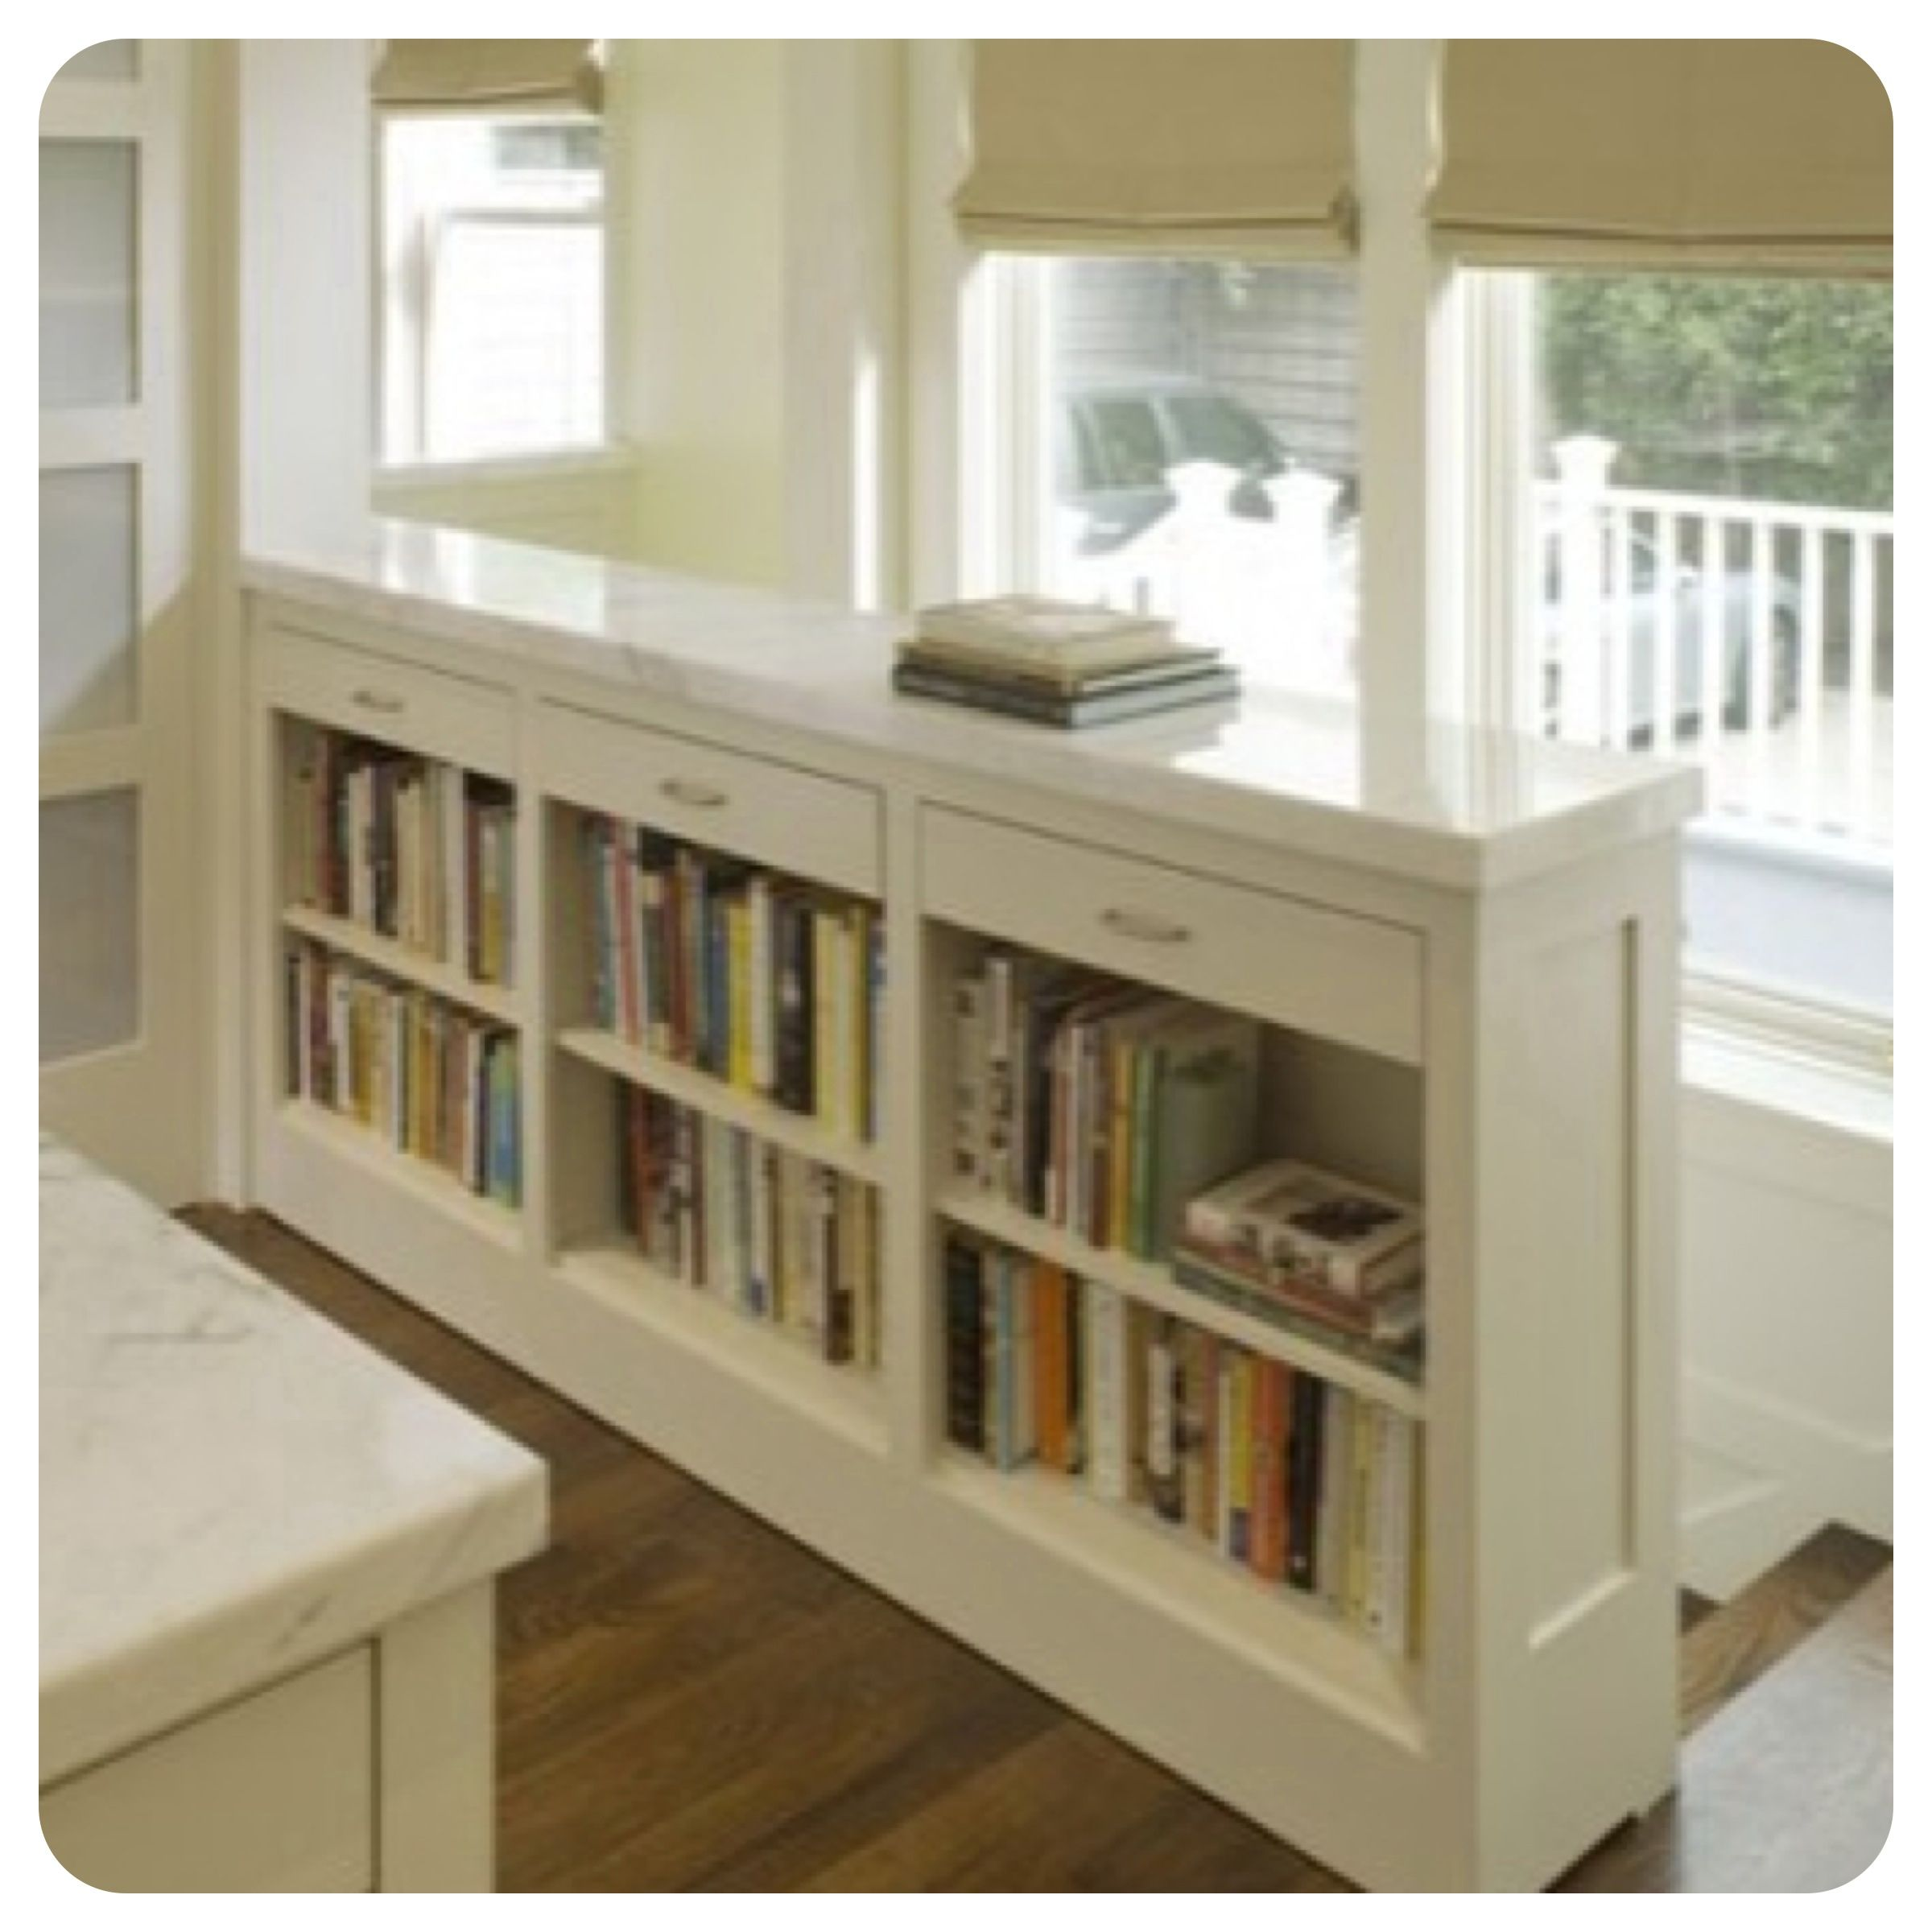 Bookcase Stair Railing Pinterest Bookshelves How Genius Is That To Remove The